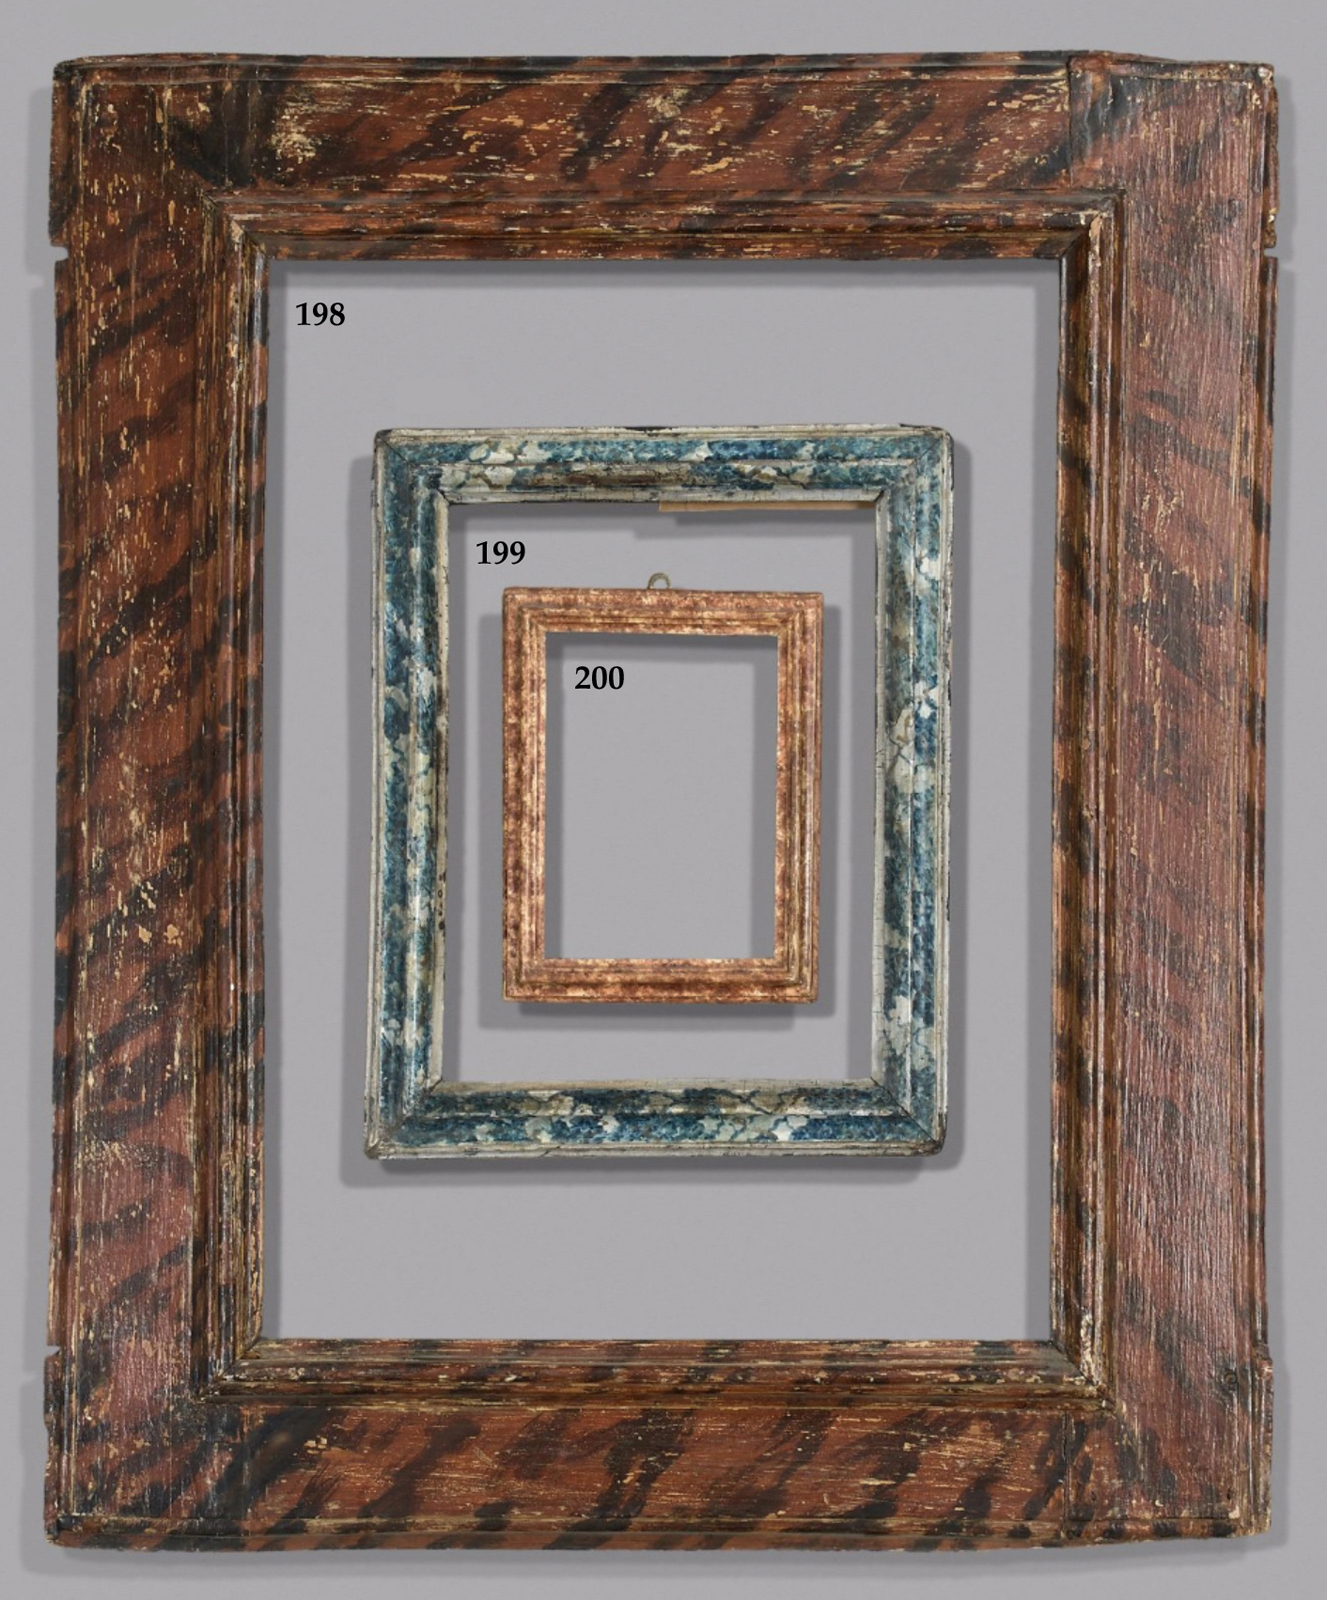 The collection of pierre berndt an auction by artcurial on 14 lots 198 200 italian 17th century frames with painted trompe loeil finishes jeuxipadfo Gallery